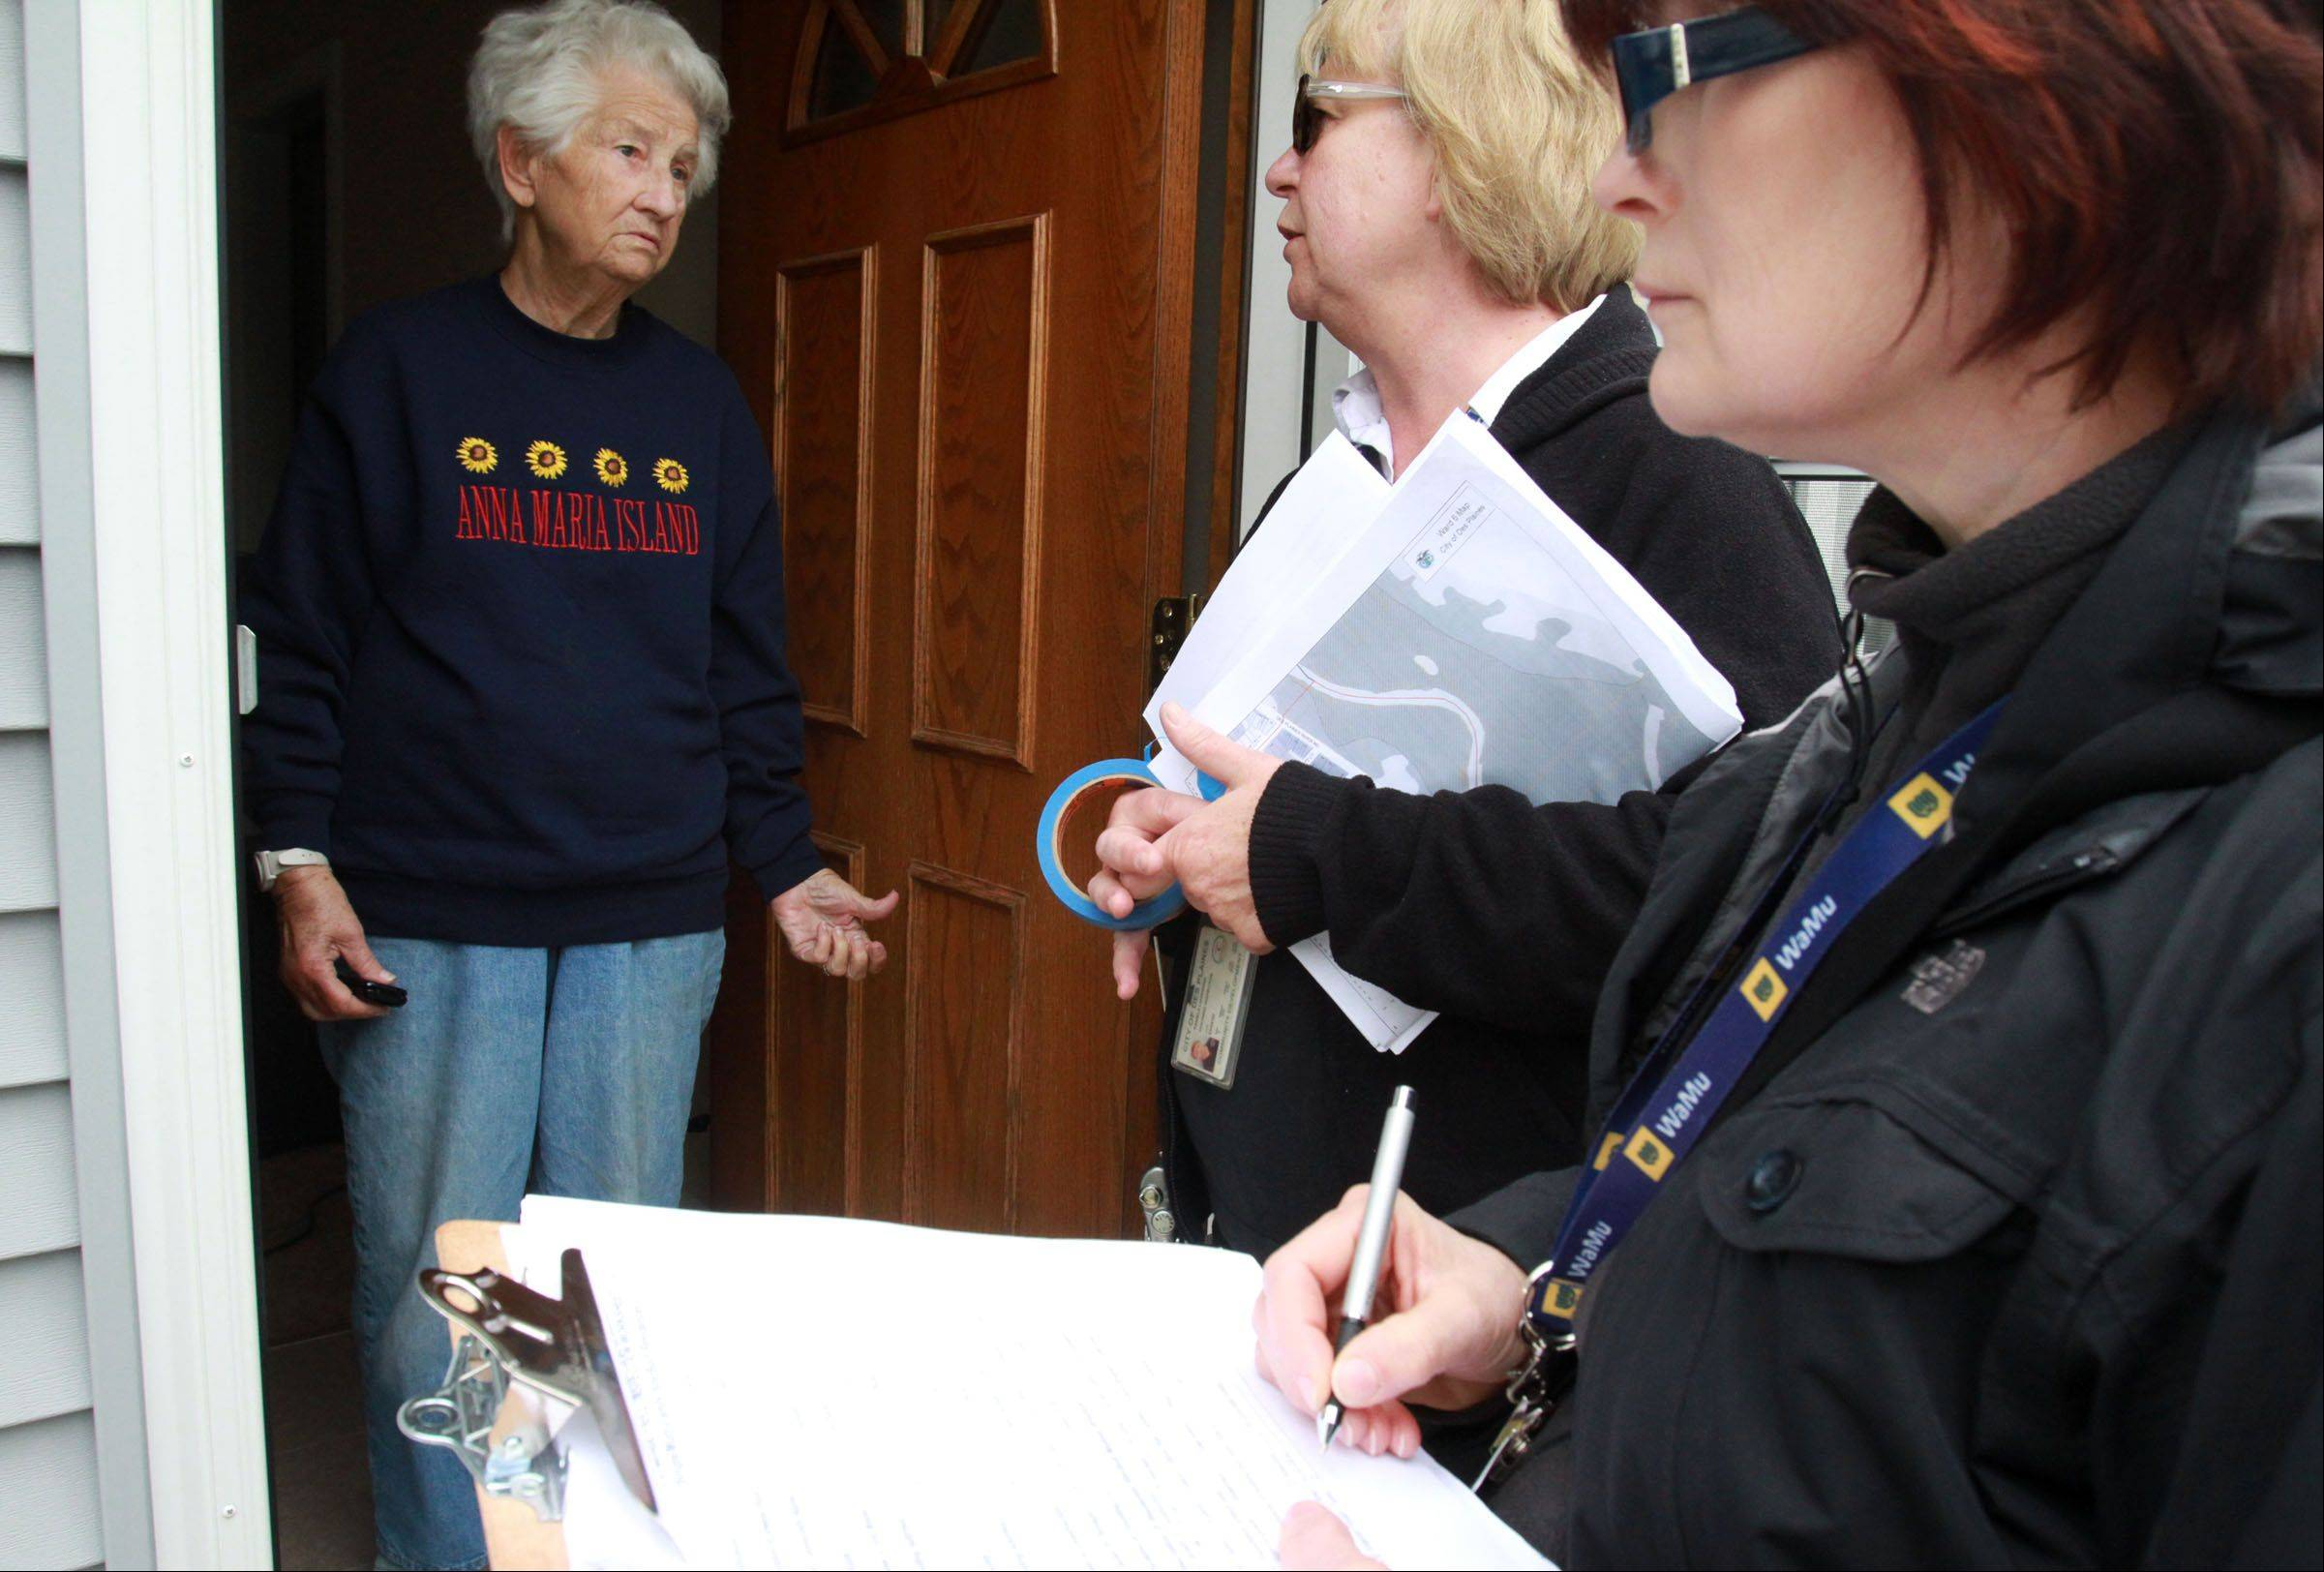 Des Plaines building inspectors Davorka Kirincic, right, and Pam Lunsmann ask Elizabeth Heyse, a resident of Fargo Avenue, about flooding in her home and yard Tuesday.